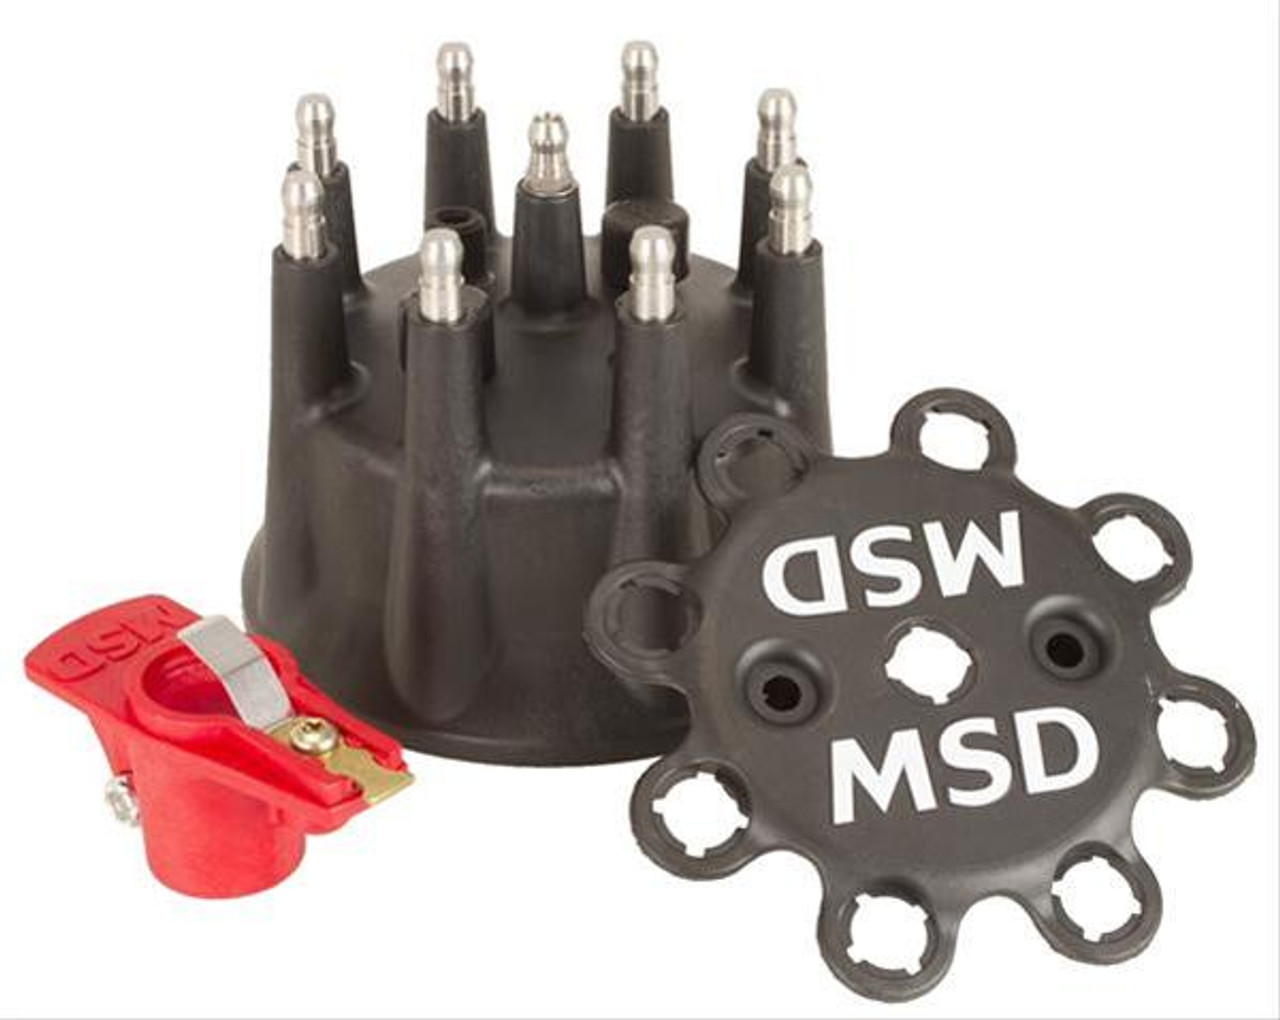 MSD Ignition Distributor Cap and Rotor Kits 79193